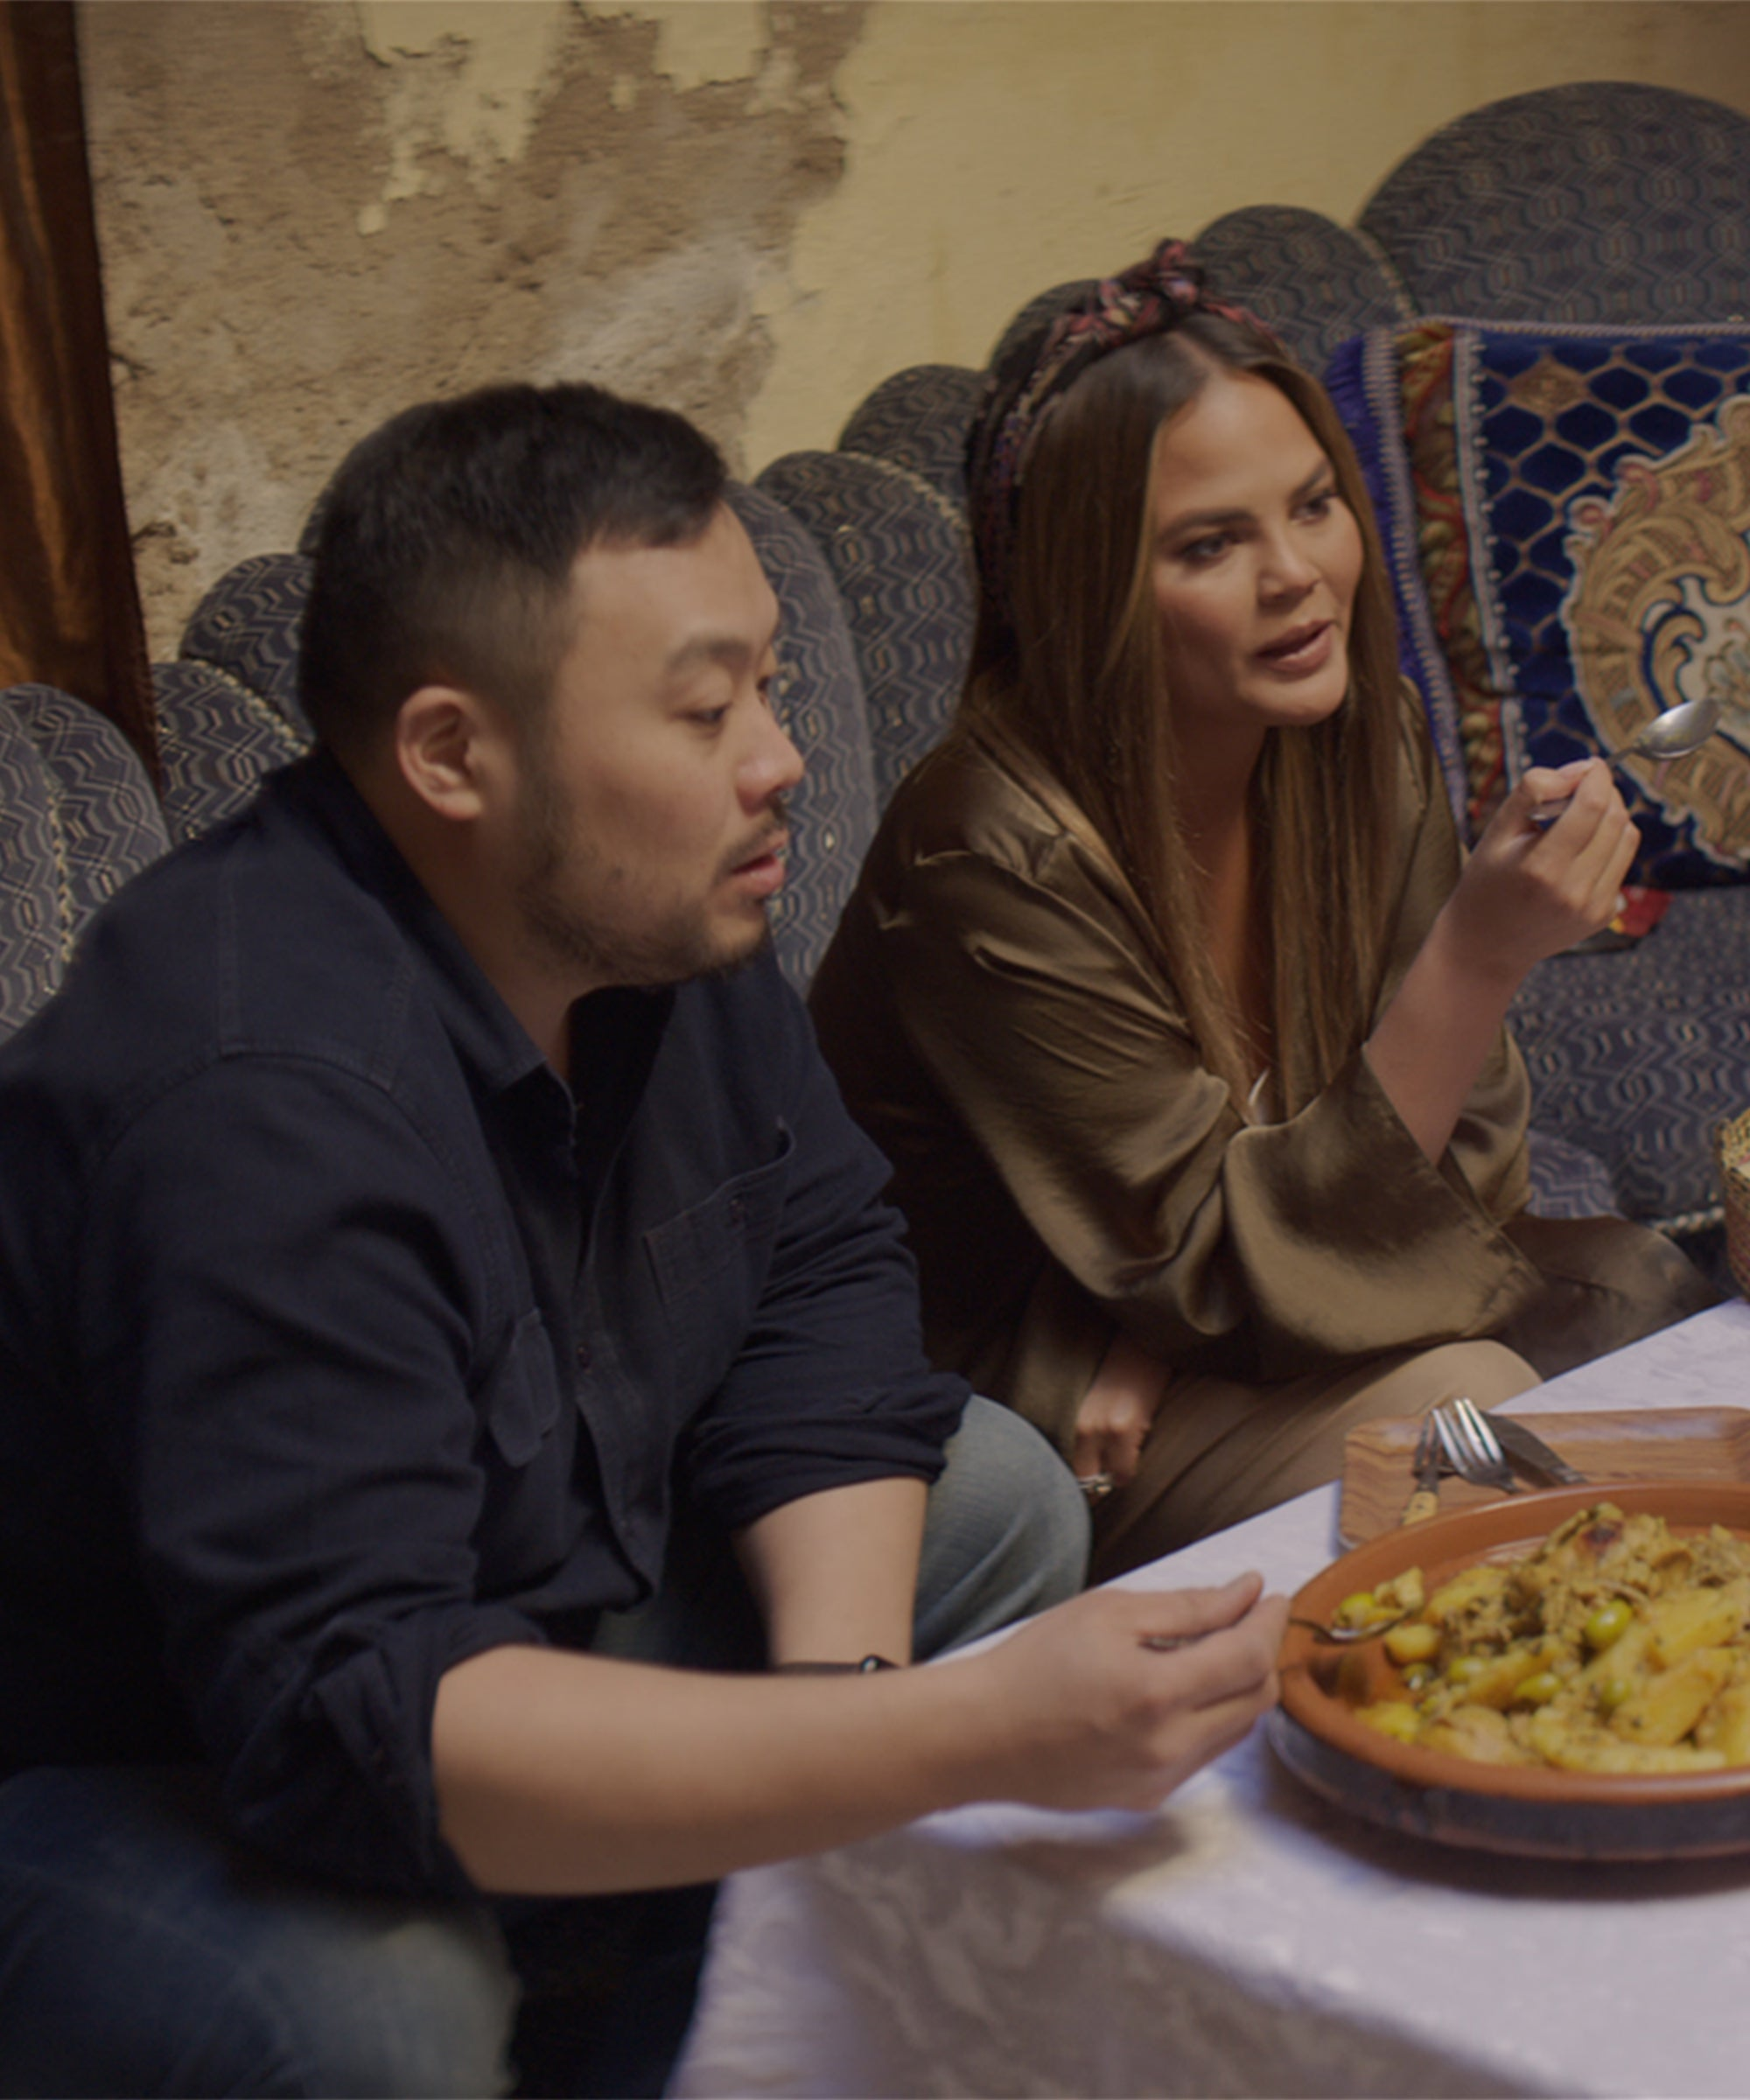 Netflix Just Released The Trailer For David Chang's New Food & Travel Series